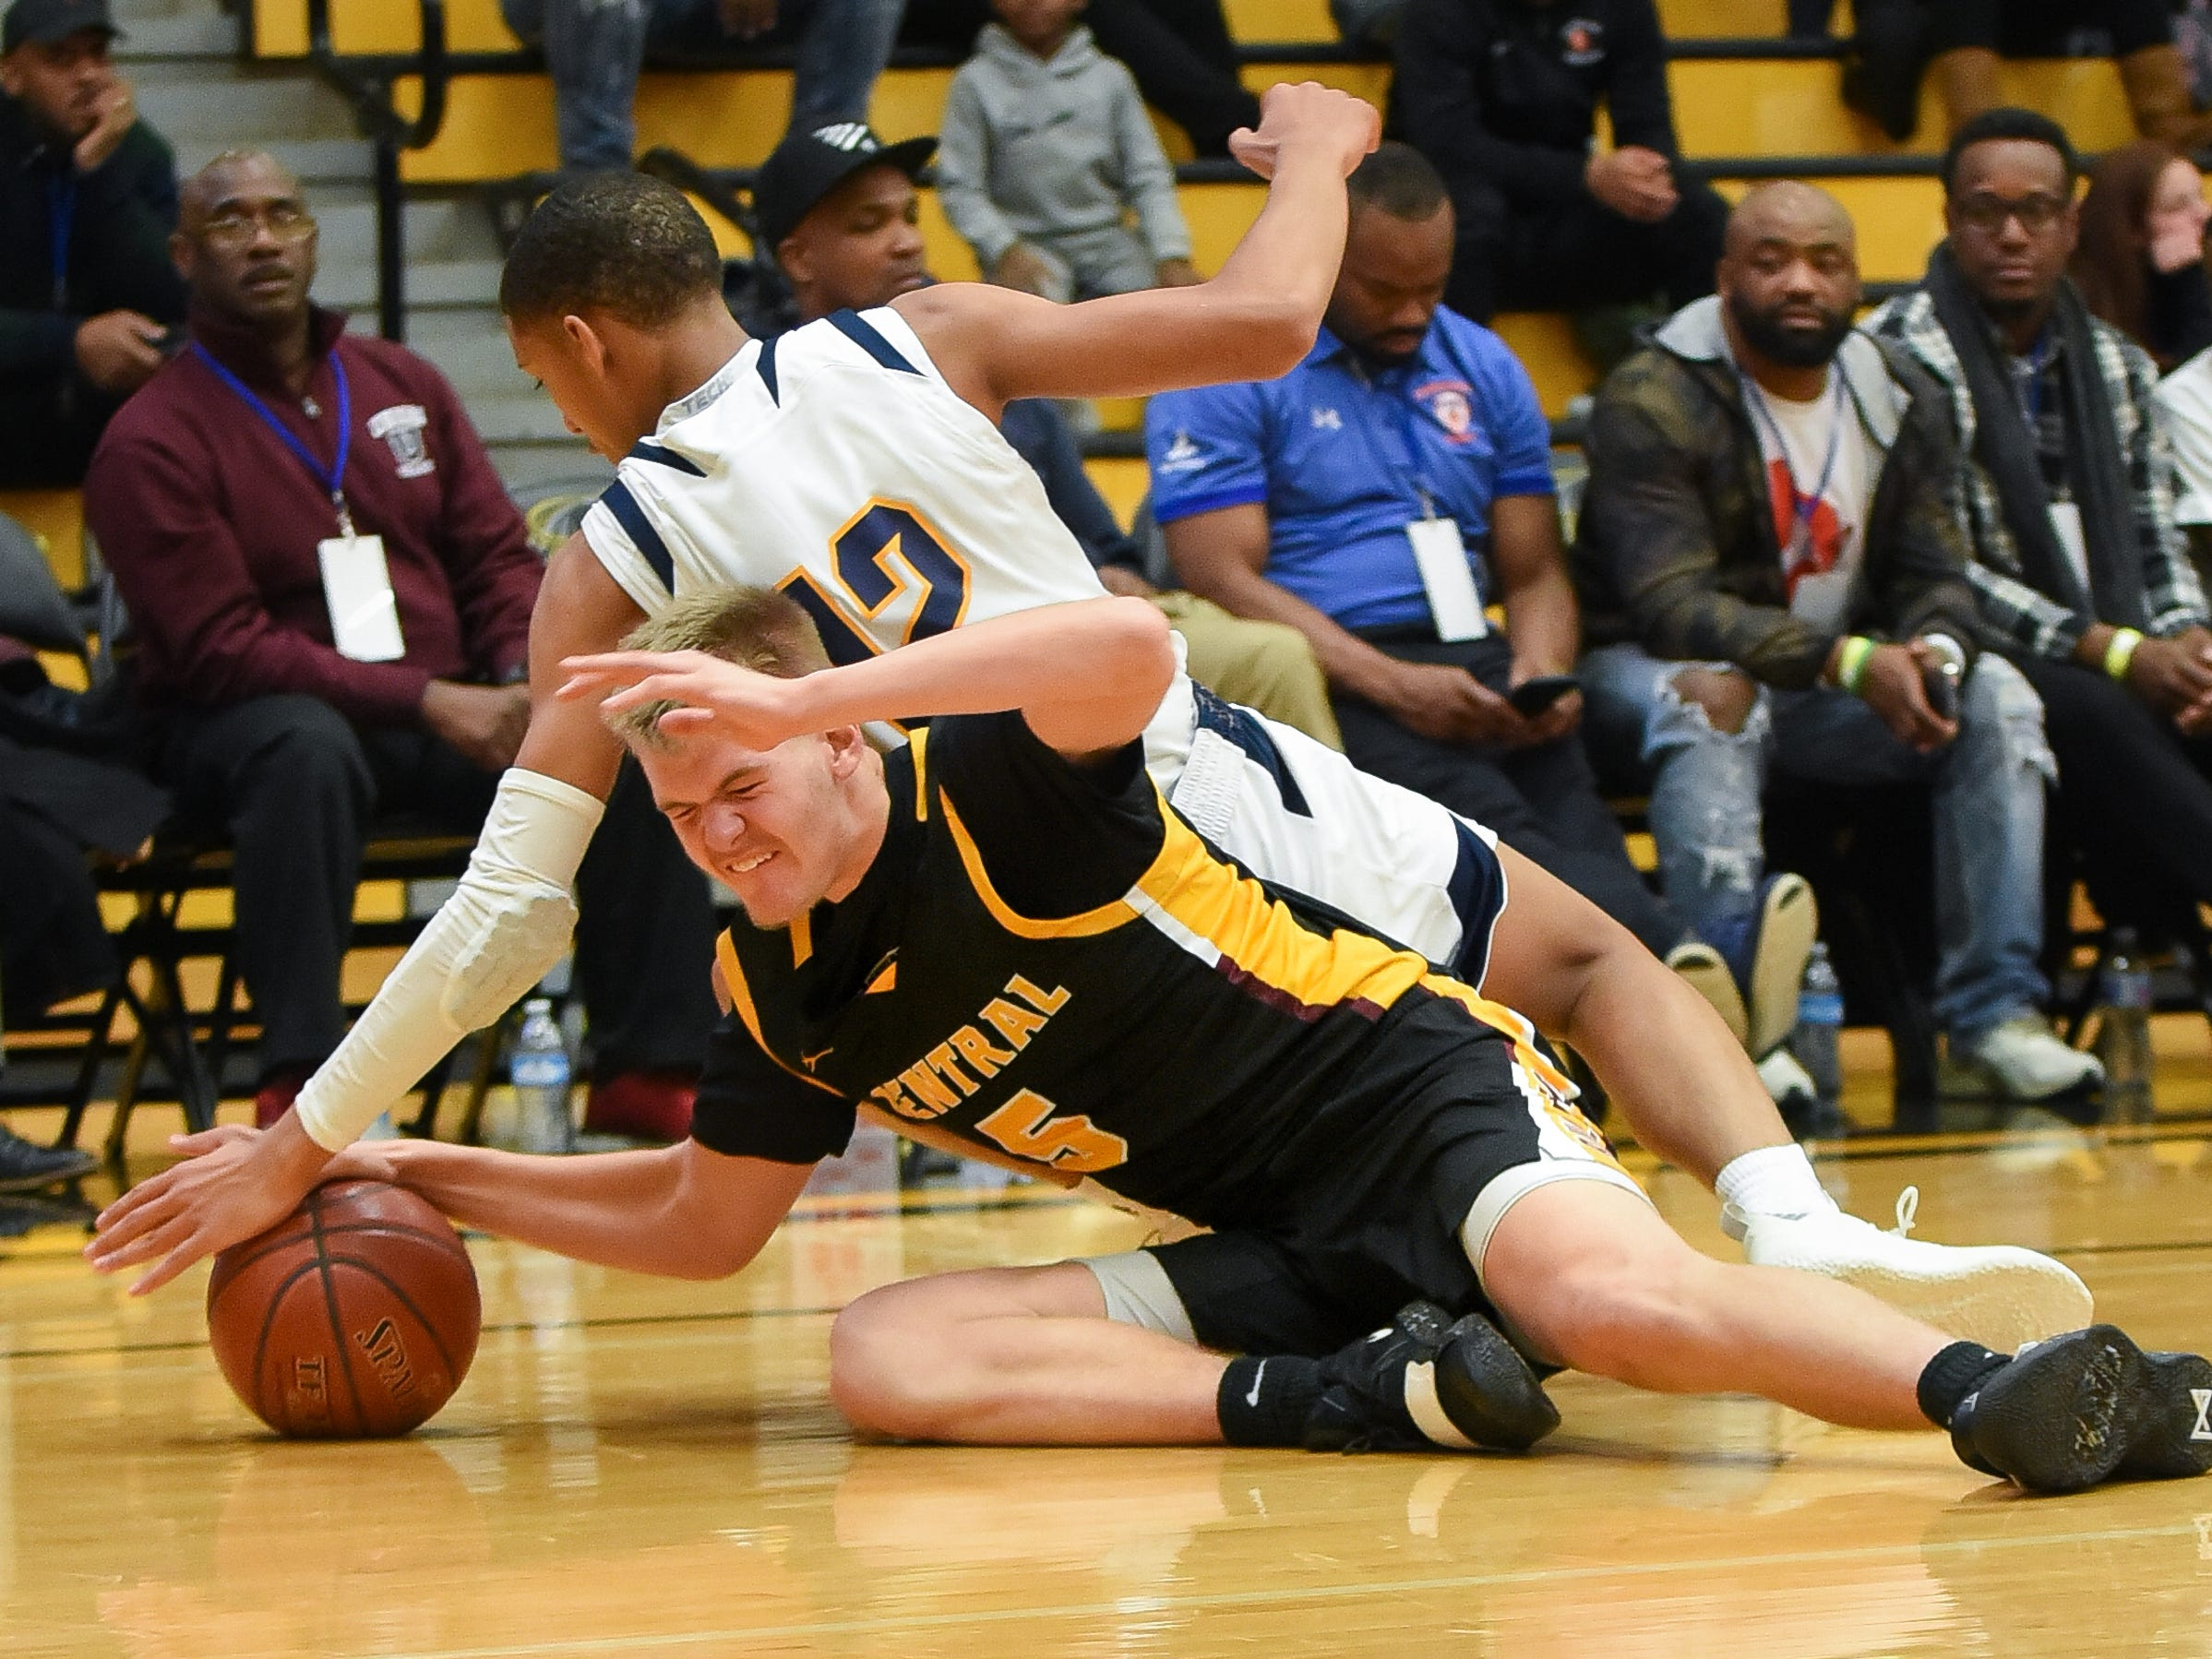 West Allis Central senior guard Cameron Drury (bottom) and Golda Meir senior guard Kai Parham hit the floor for a loose ball in the Fresh Coast Classic basketball showcase Saturday, November 24, 2018, at UW-Milwaukee's Klotsche Center.